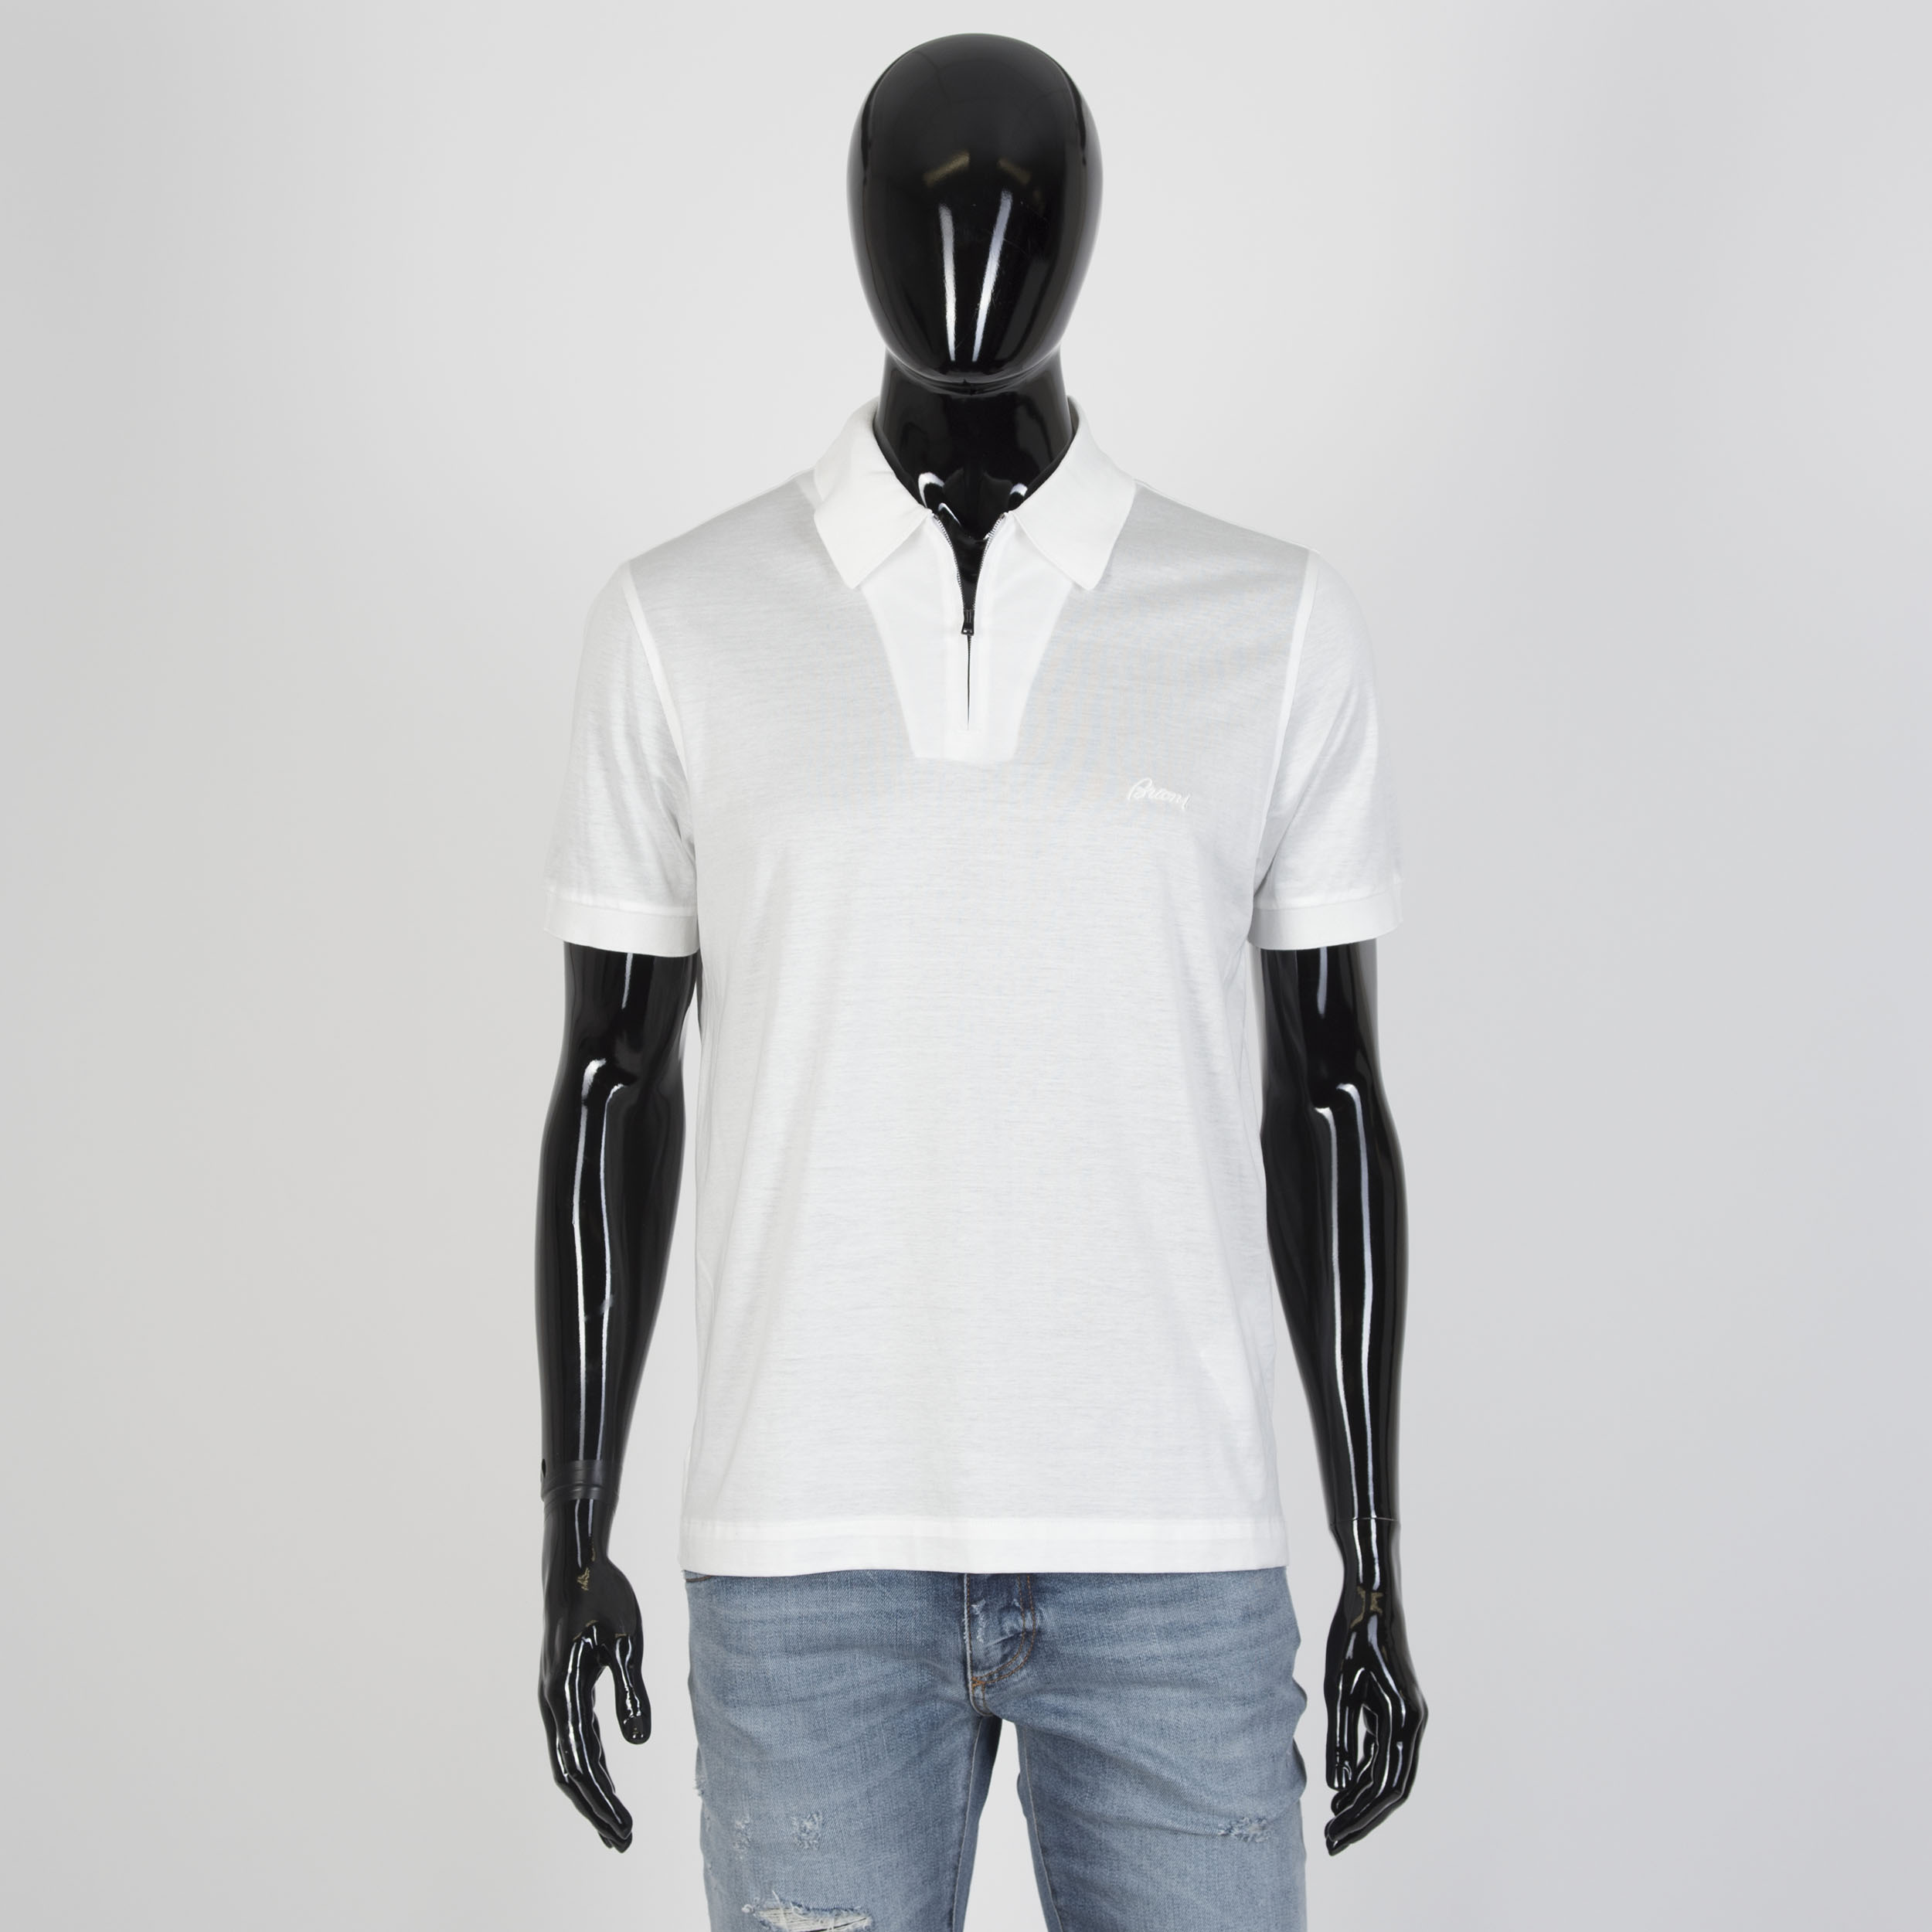 3e75f966291 Details about BRIONI 455$ Authentic New Zip Polo Neck Shirt In White Cotton  Jersey